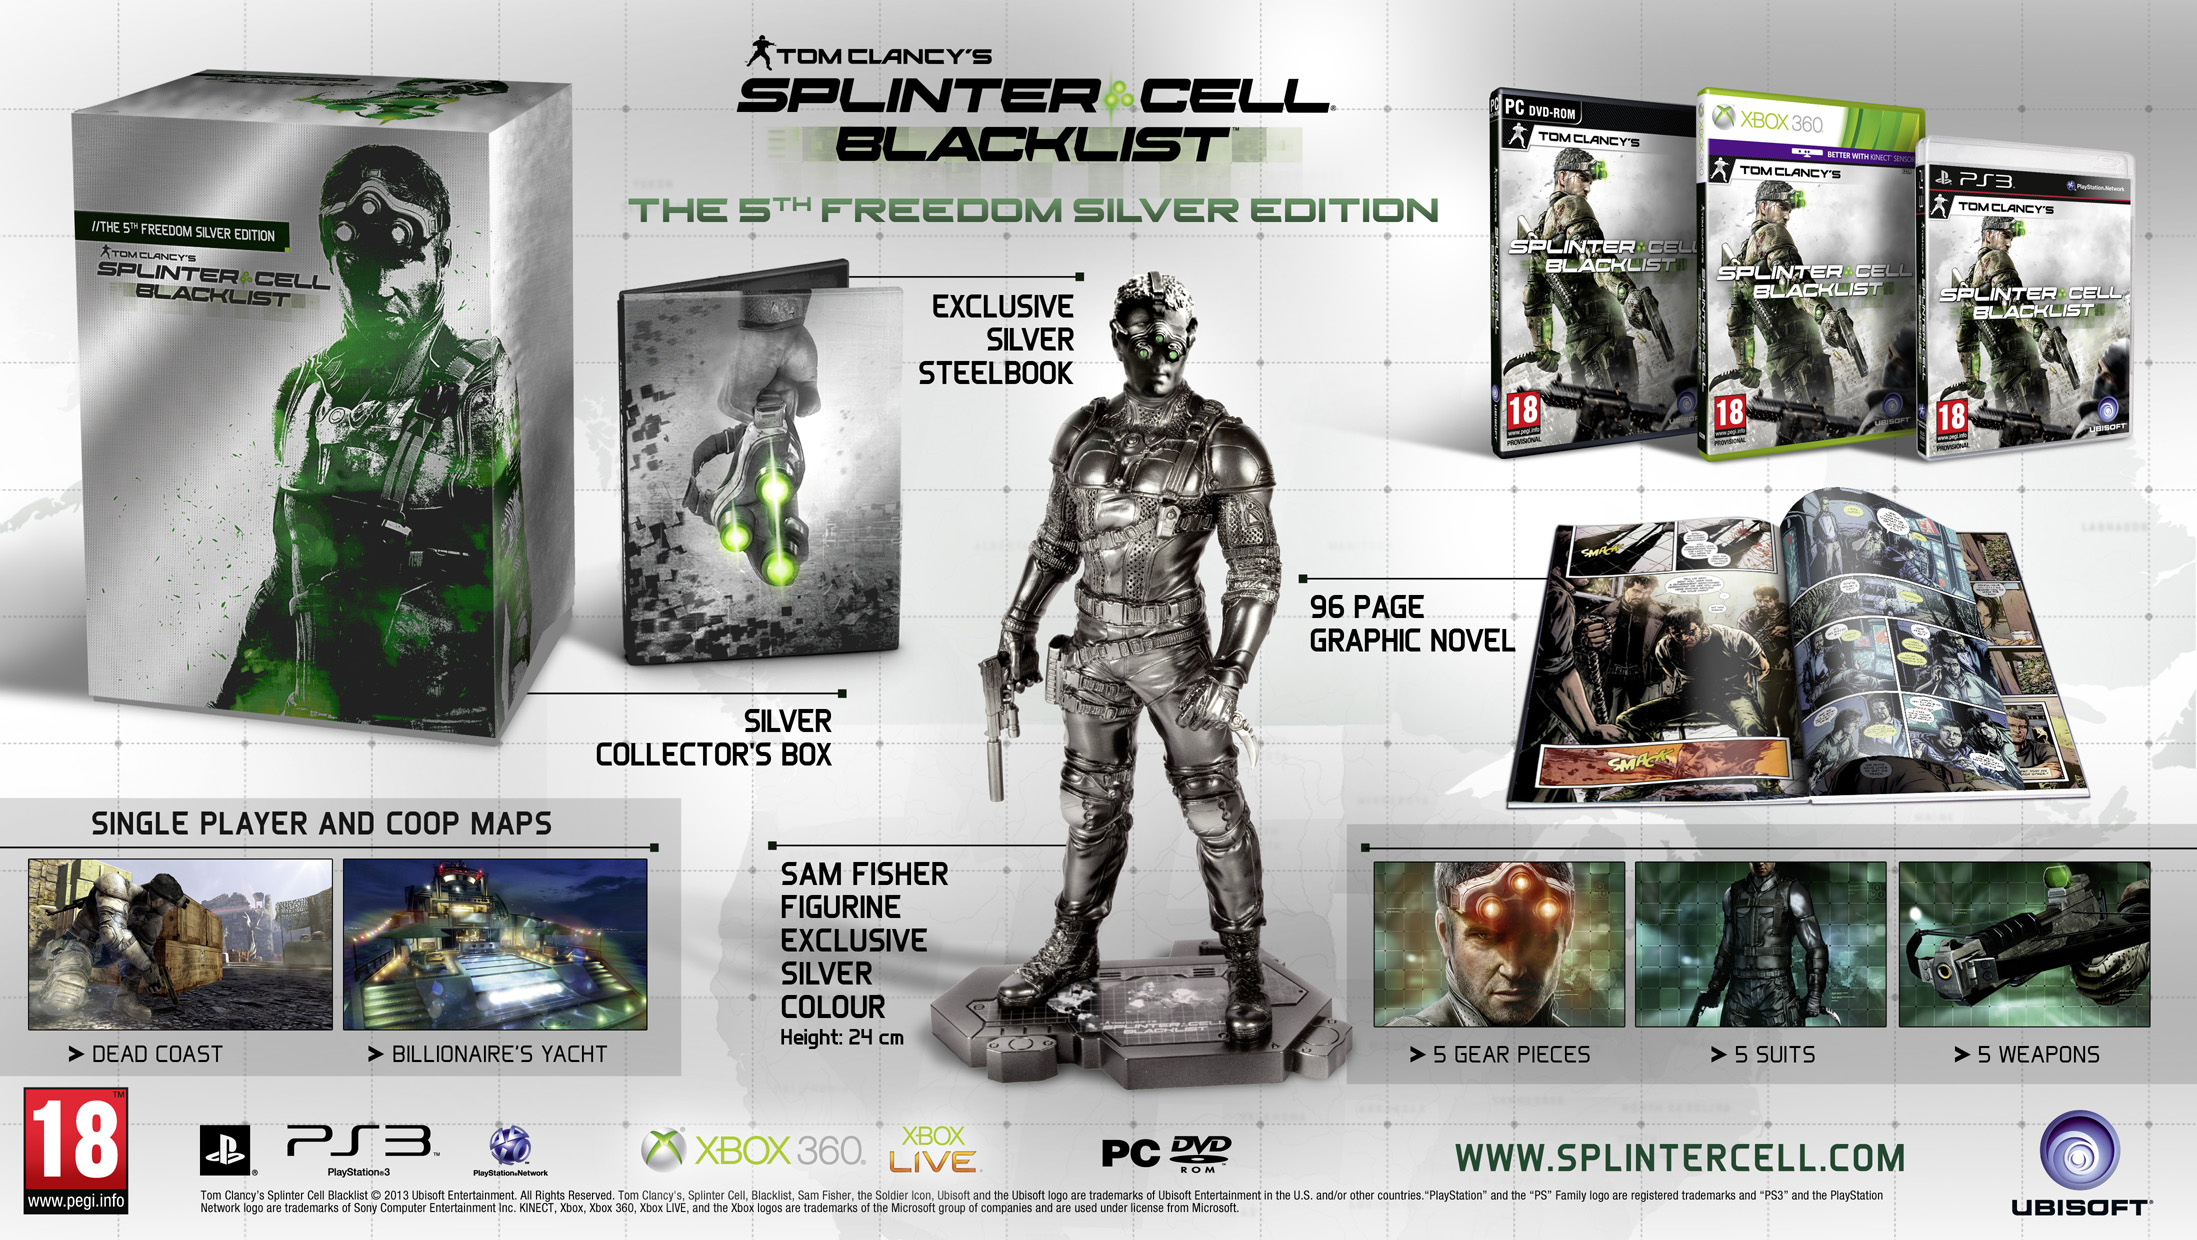 Splinter Cell Blacklist - The 5th Freedom Silver Edition Revealed Pic